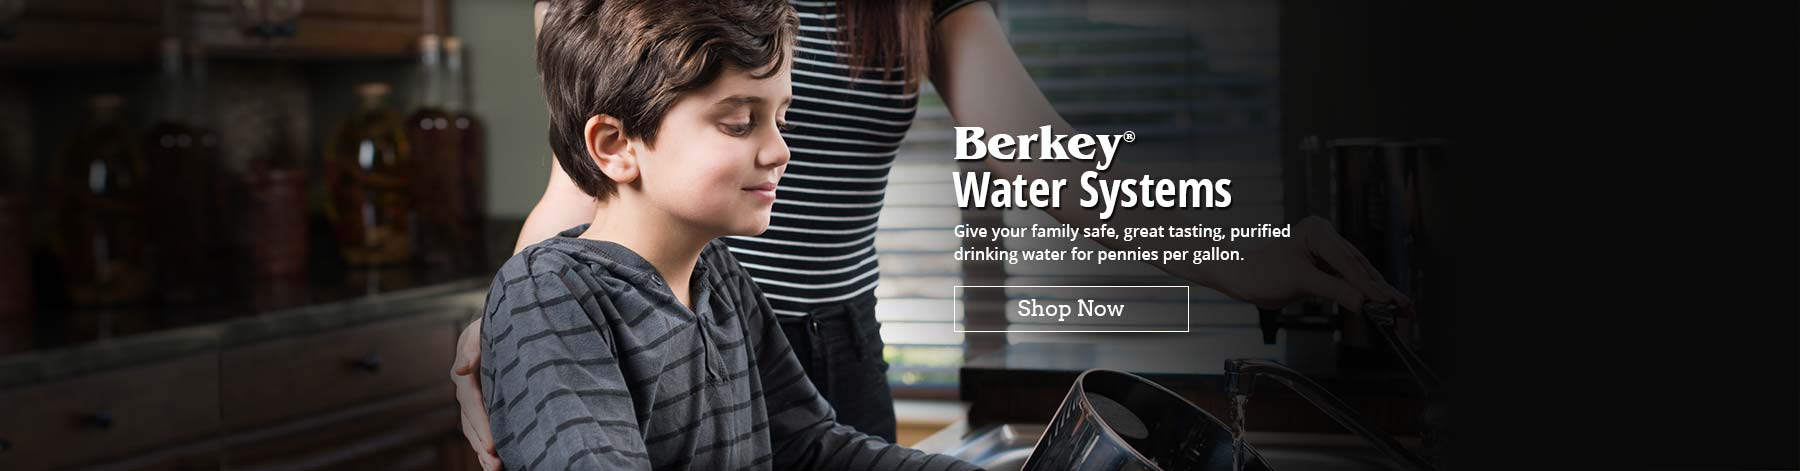 Berkey Water Systems - Give your family safe, great tasting, purified drinking water for pennies per gallon.